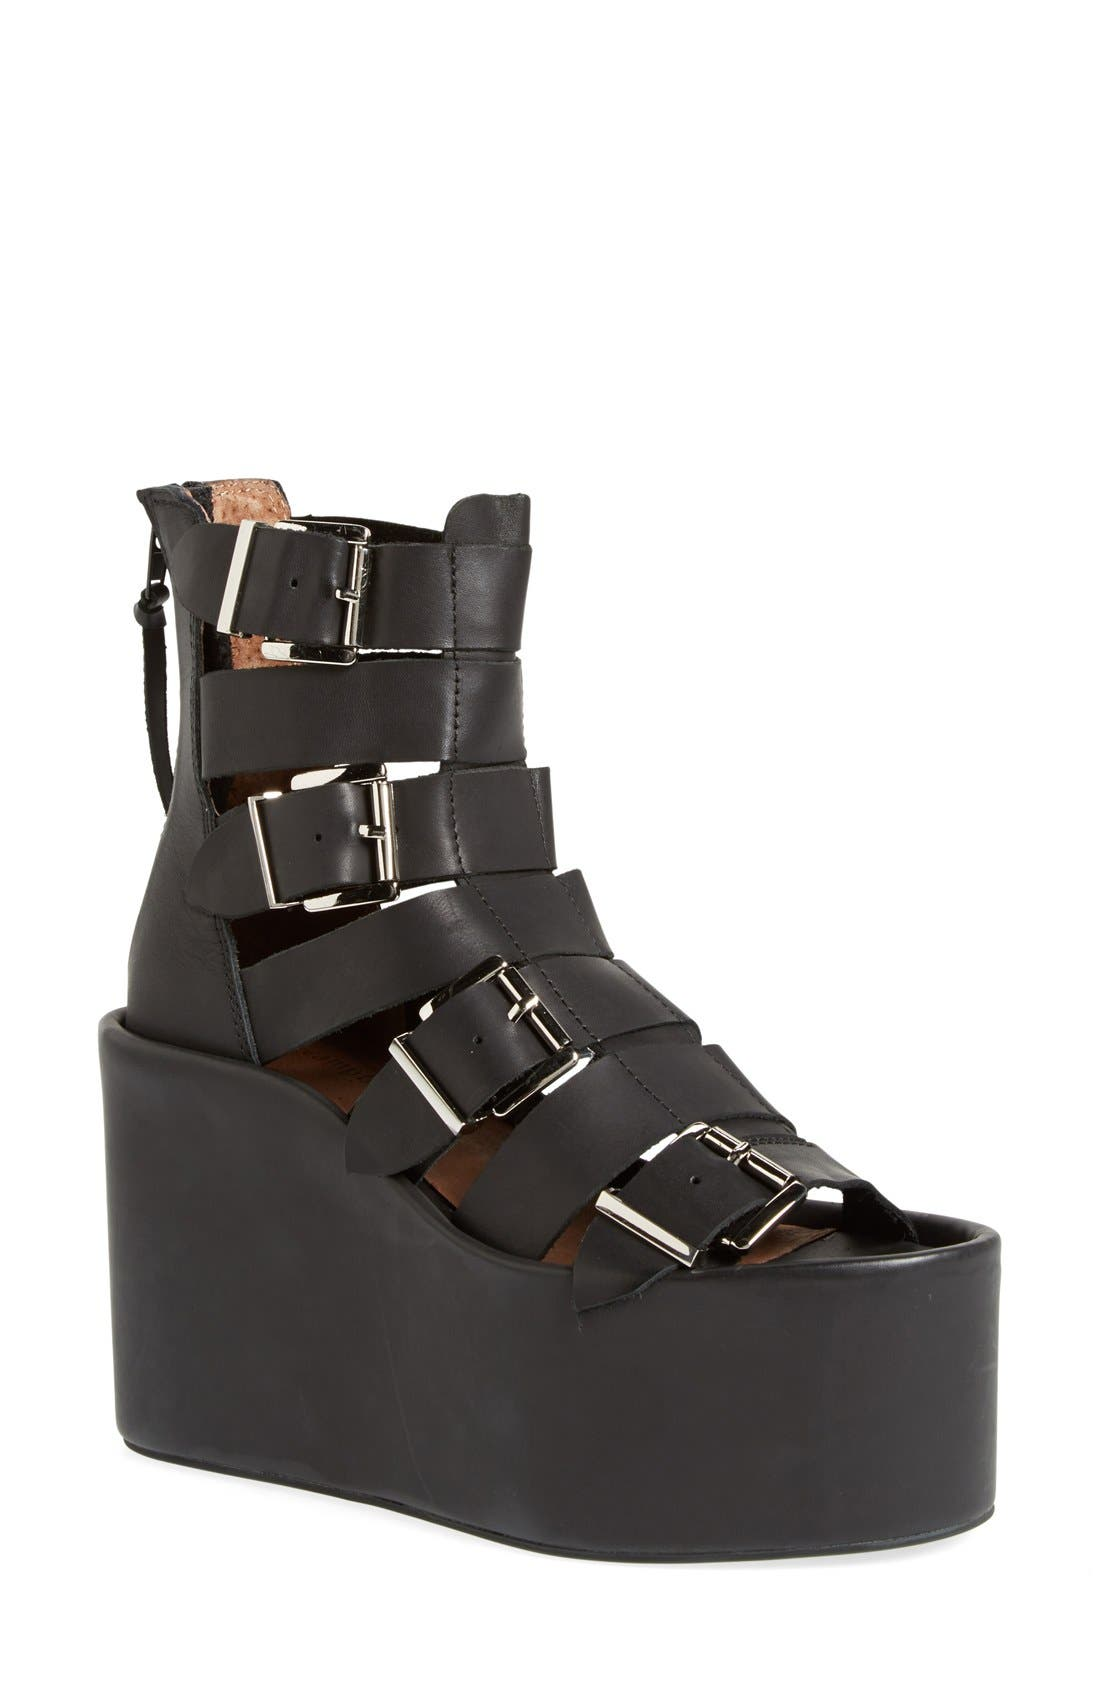 Alternate Image 1 Selected - Jeffrey Campbell 'Achilles-H' Gladiator Platform Sandal (Women)